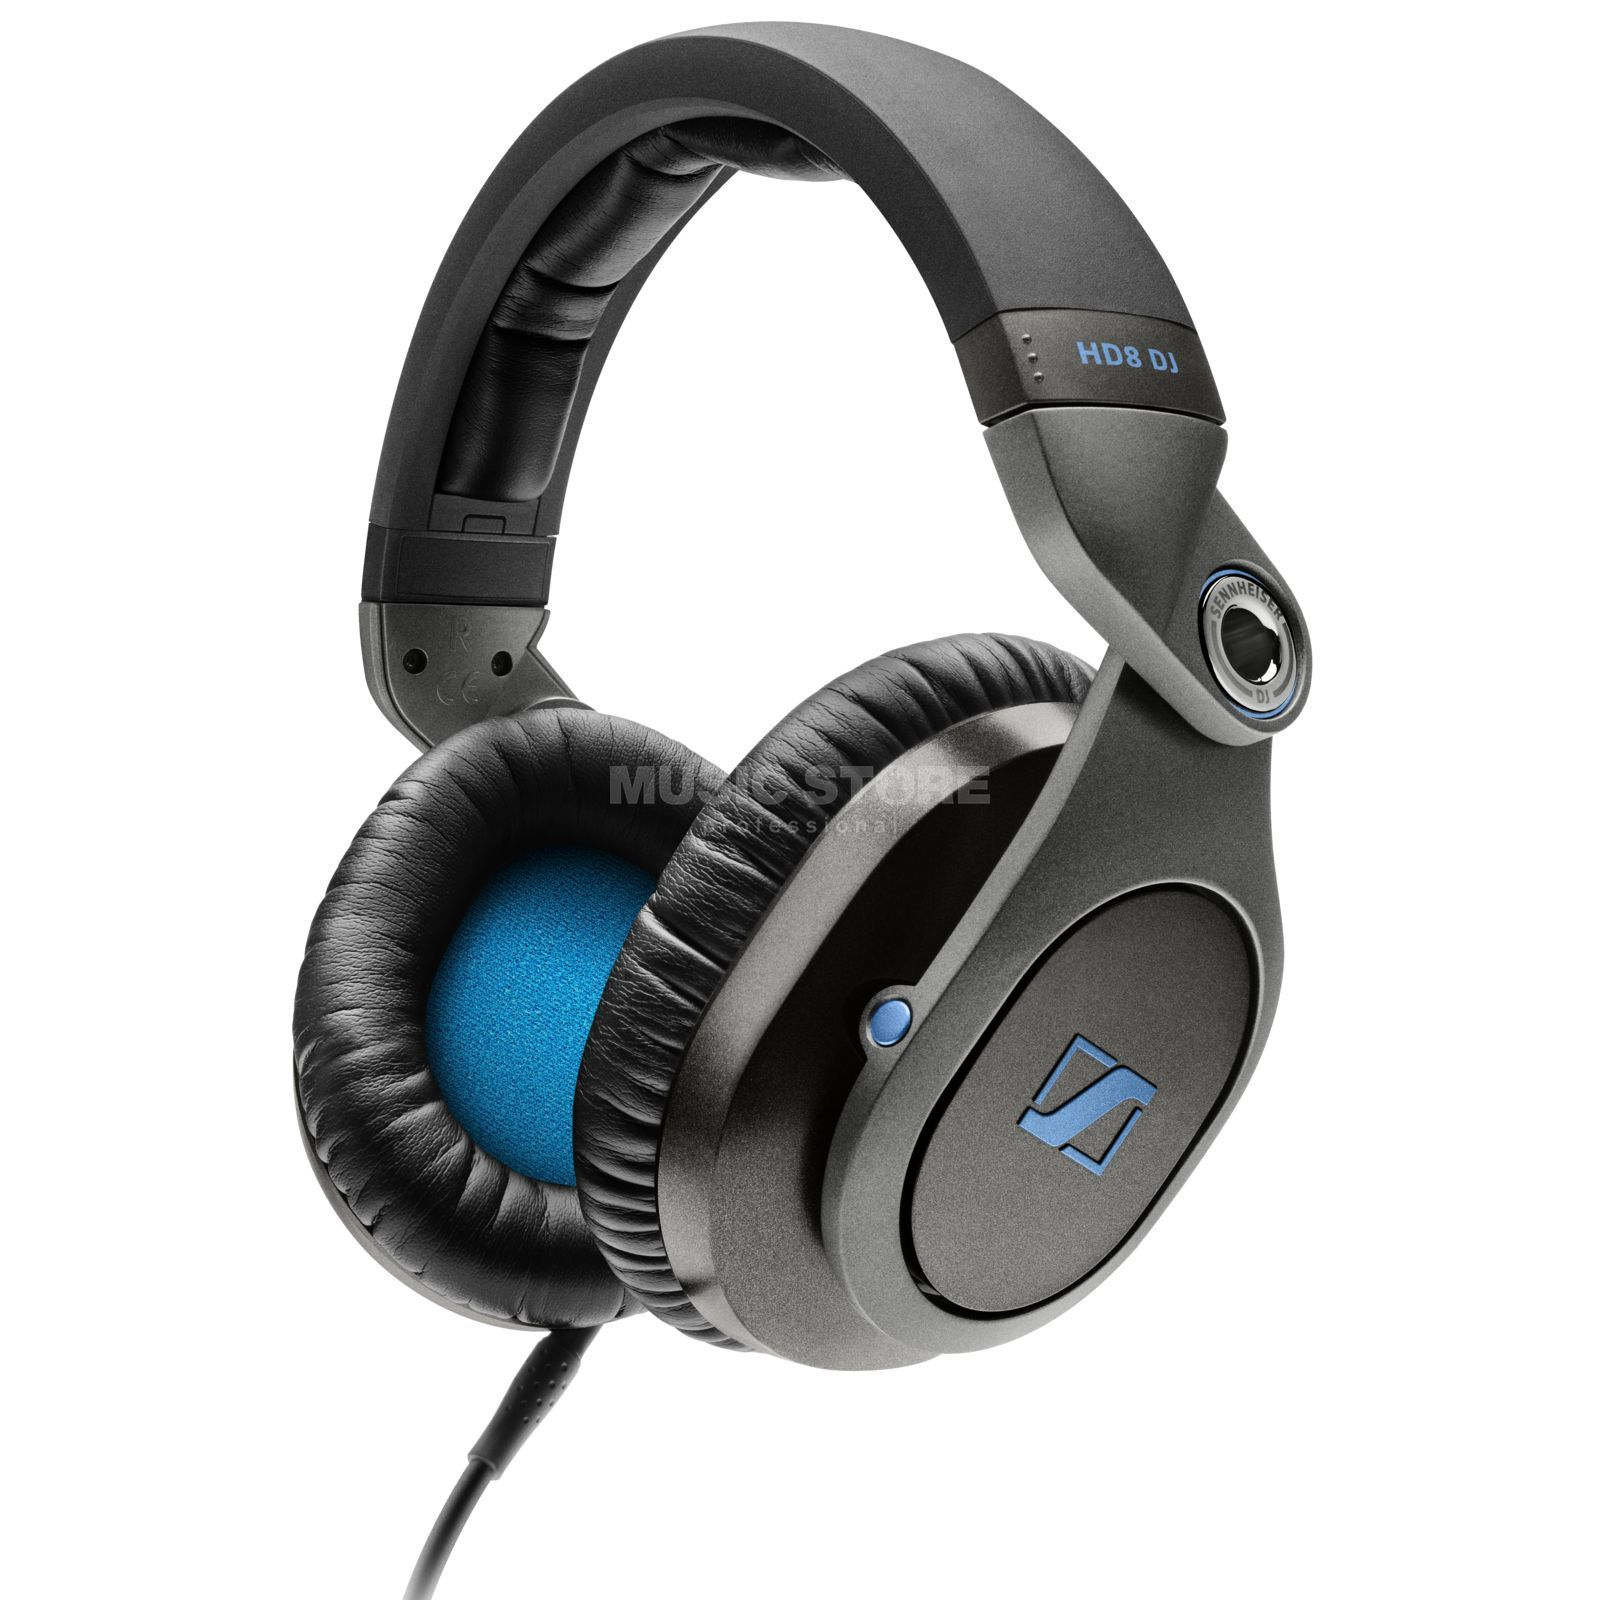 Sennheiser HD 8 DJ Headphones Closed 95 ohm, over-ear Изображение товара